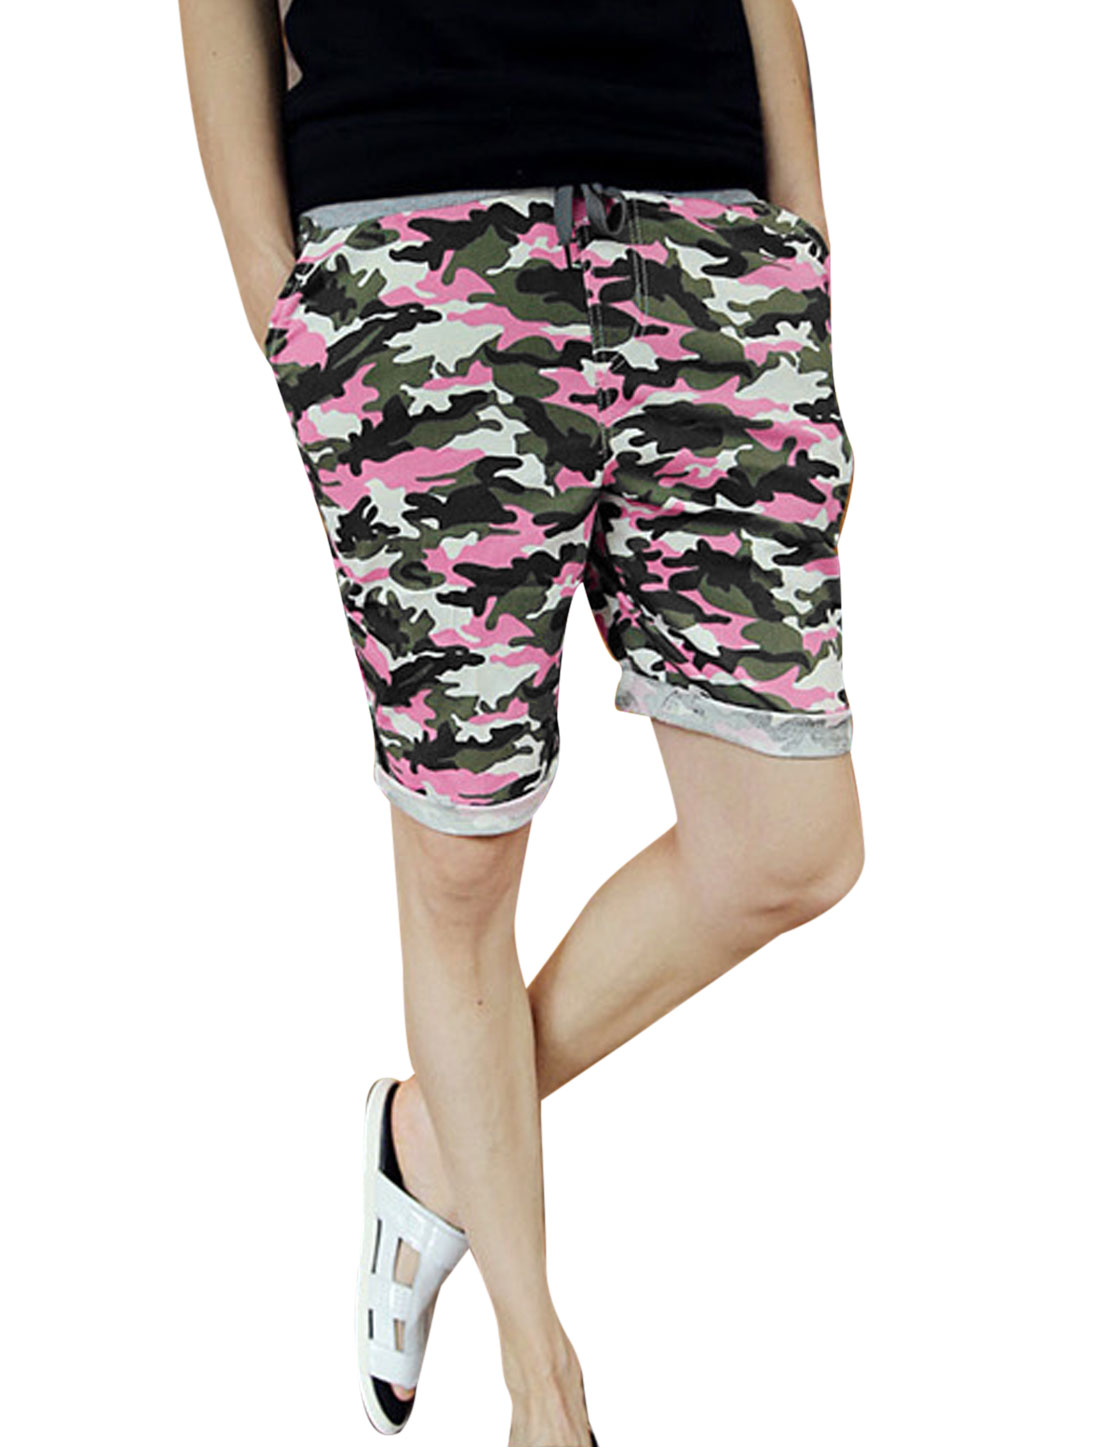 Men Drawstring Elastic Waist Two Slant Pockets Camouflage Shorts Pink Army Green W28